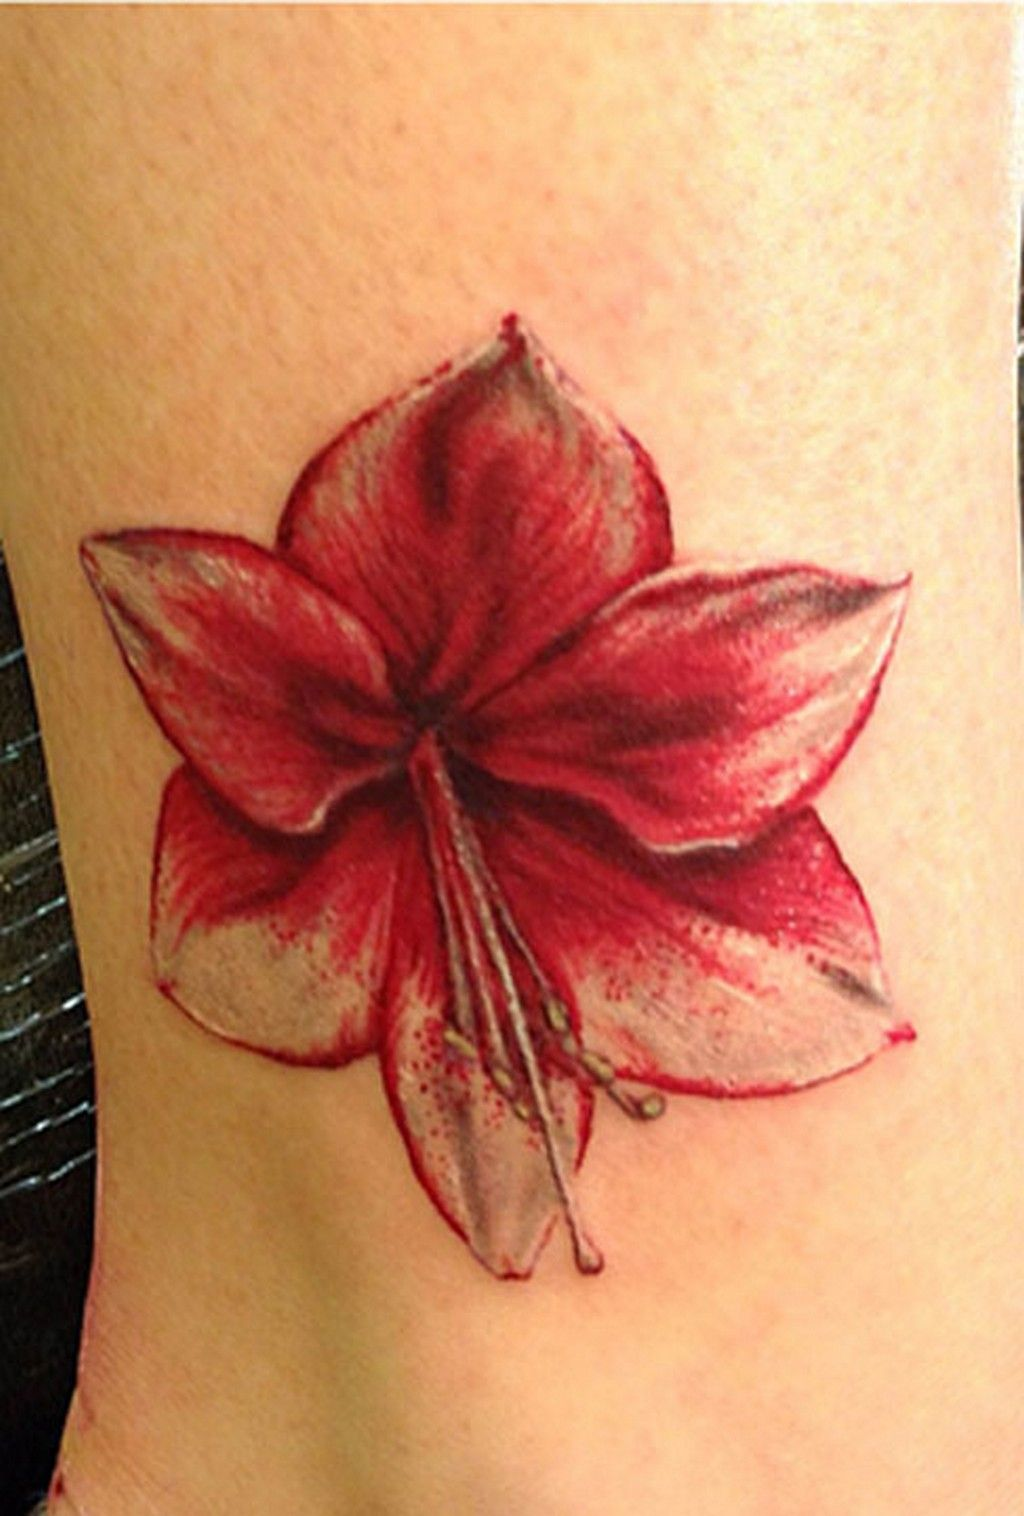 Amaryllis stand for success after a struggle. I want it in